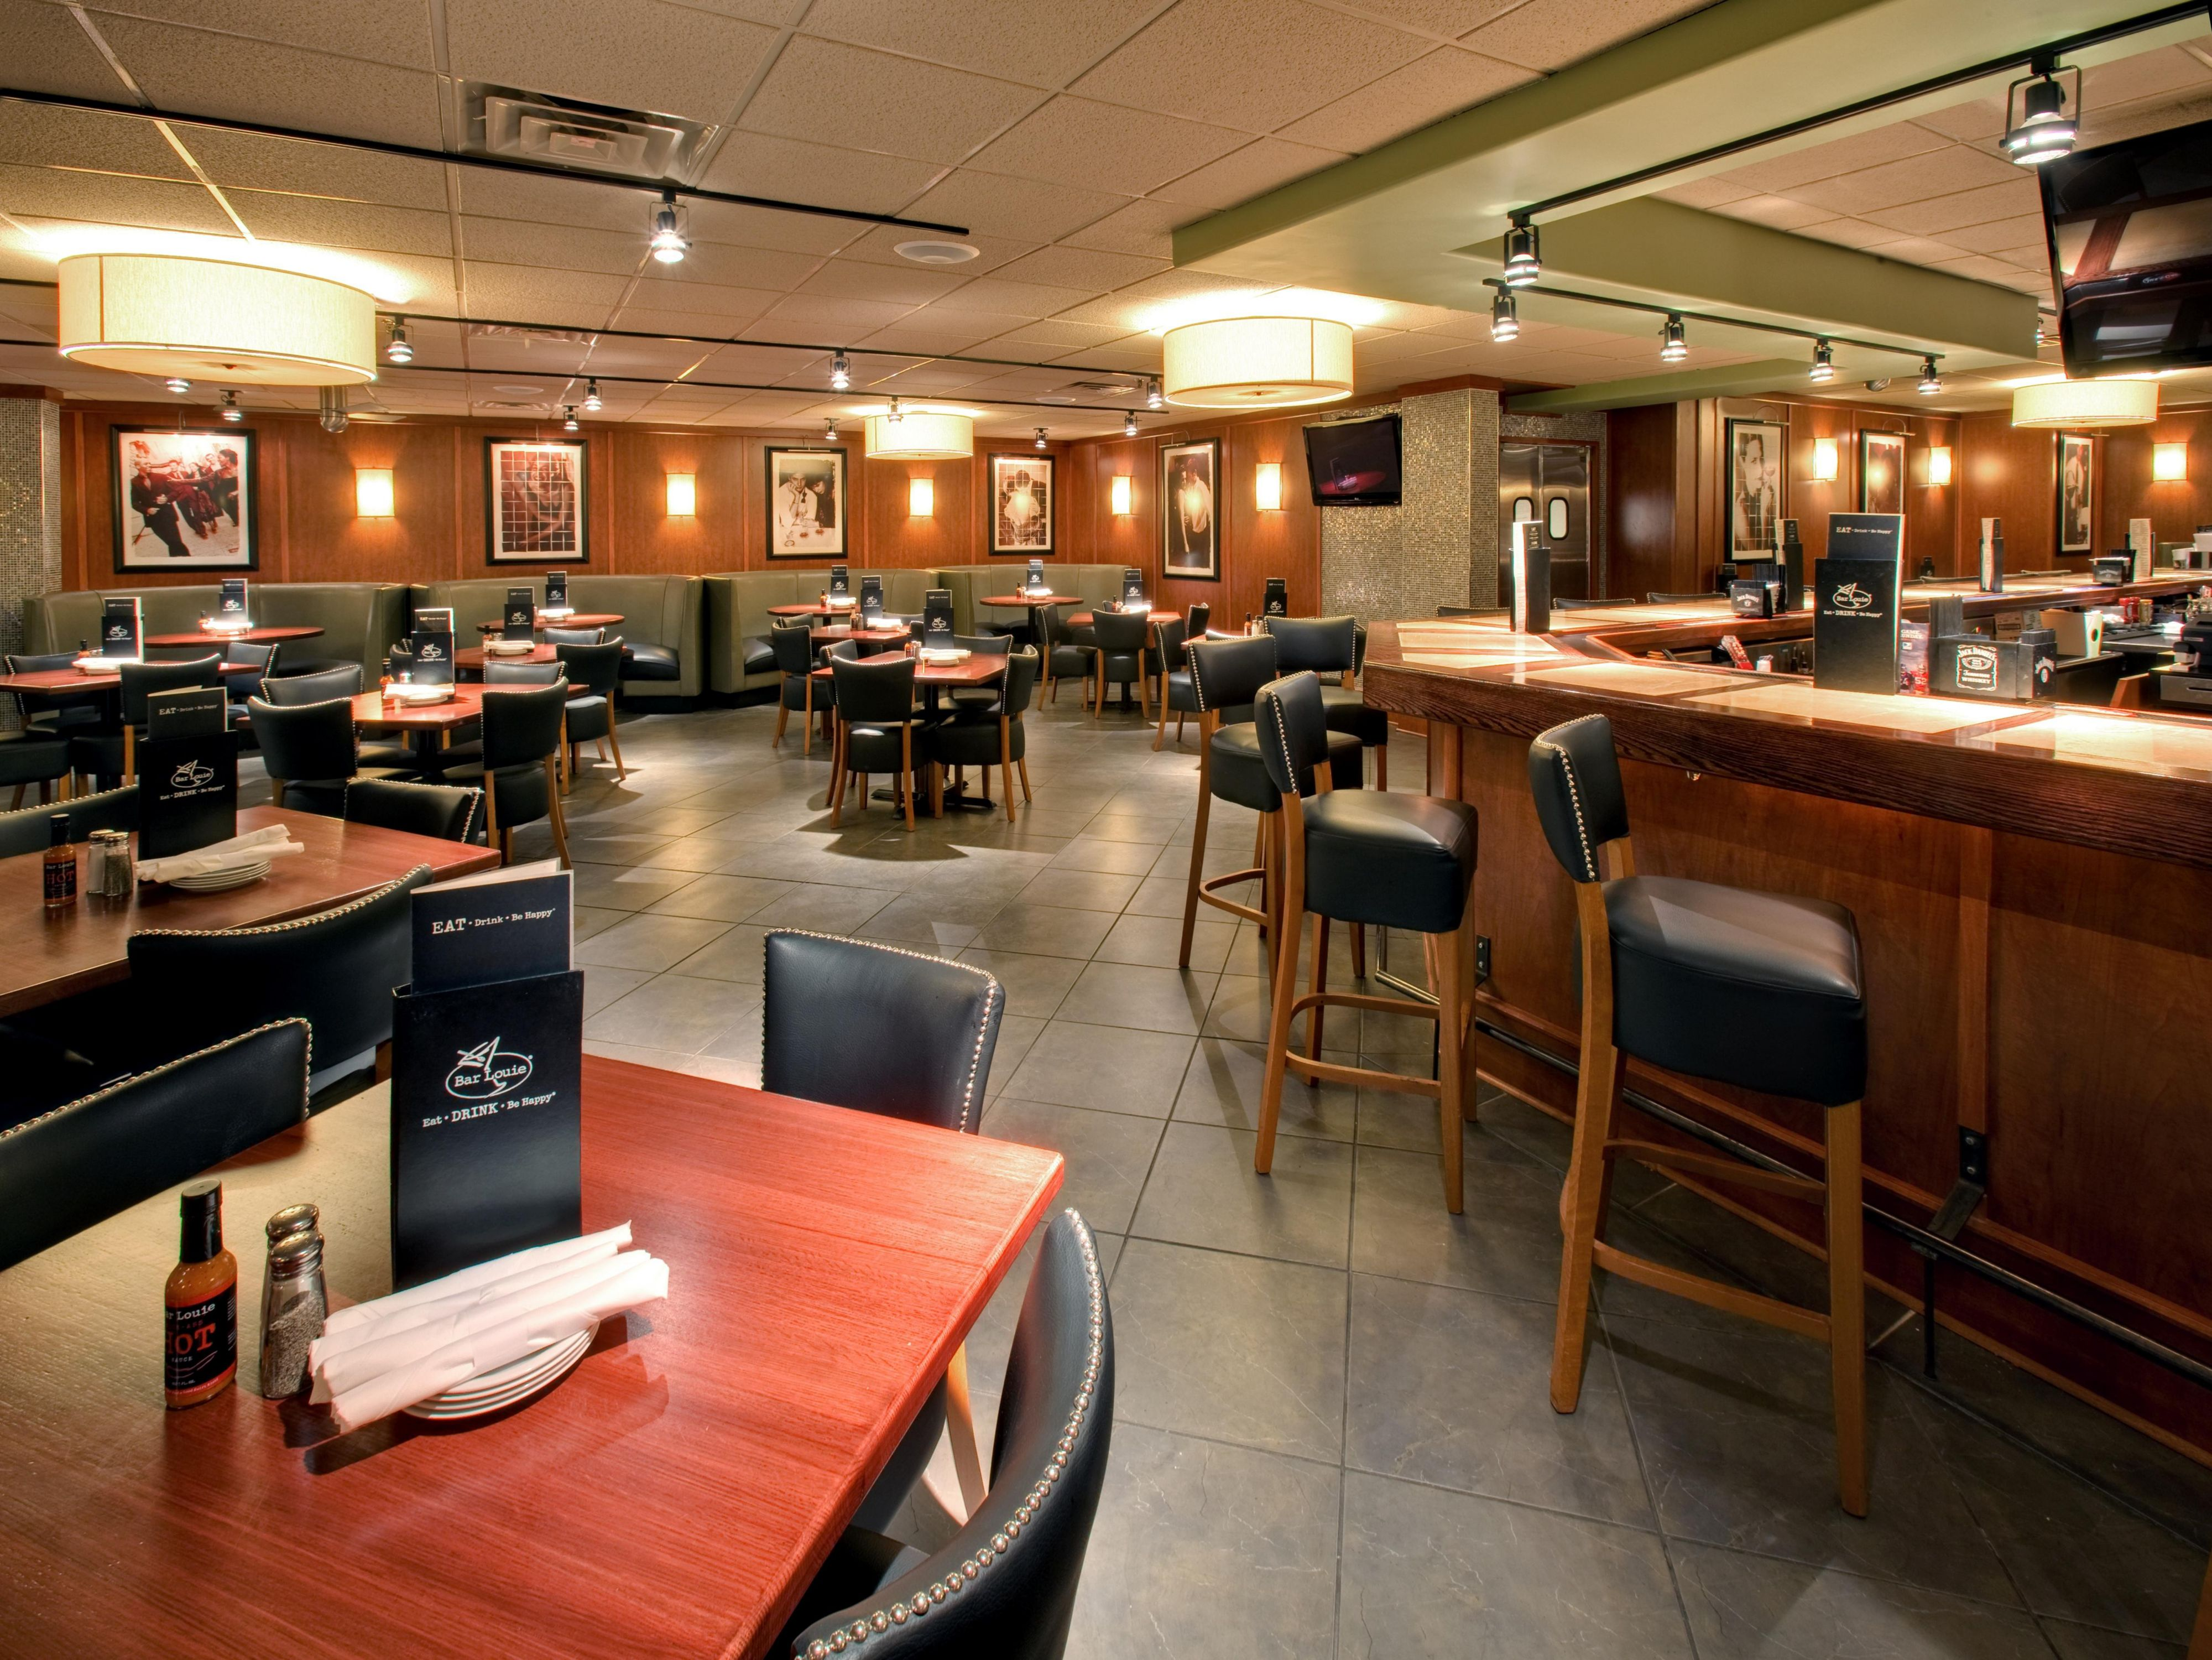 Holiday Inn Skokie is home to Bar Louie Tavern and Grill